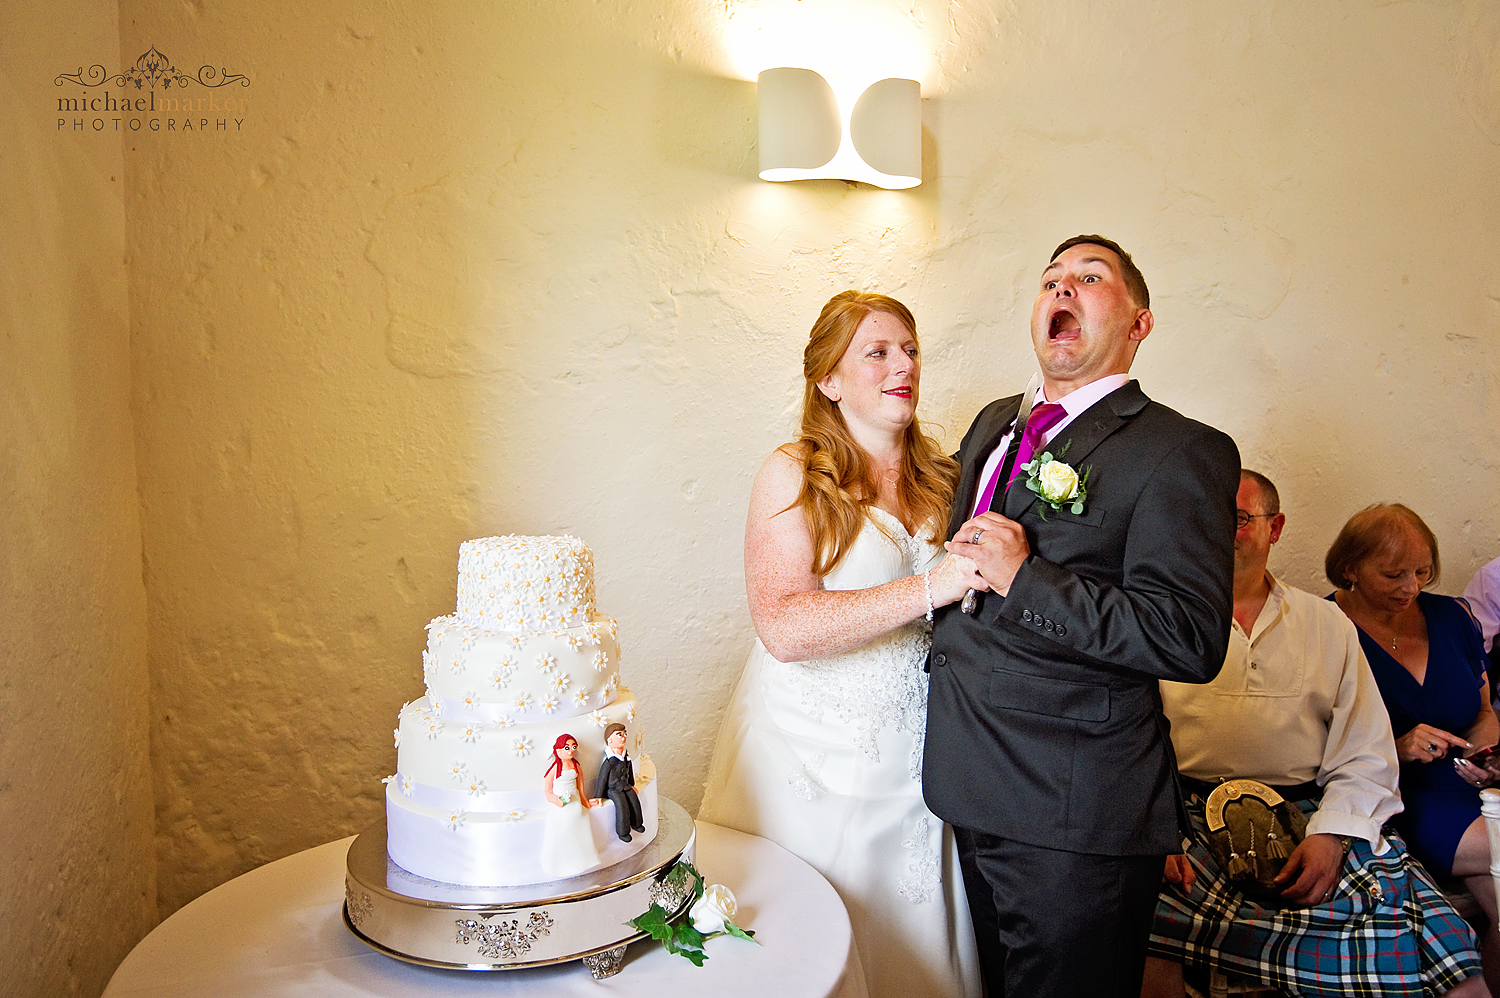 Funny wedding cake cutting at Priston Mill near Bath